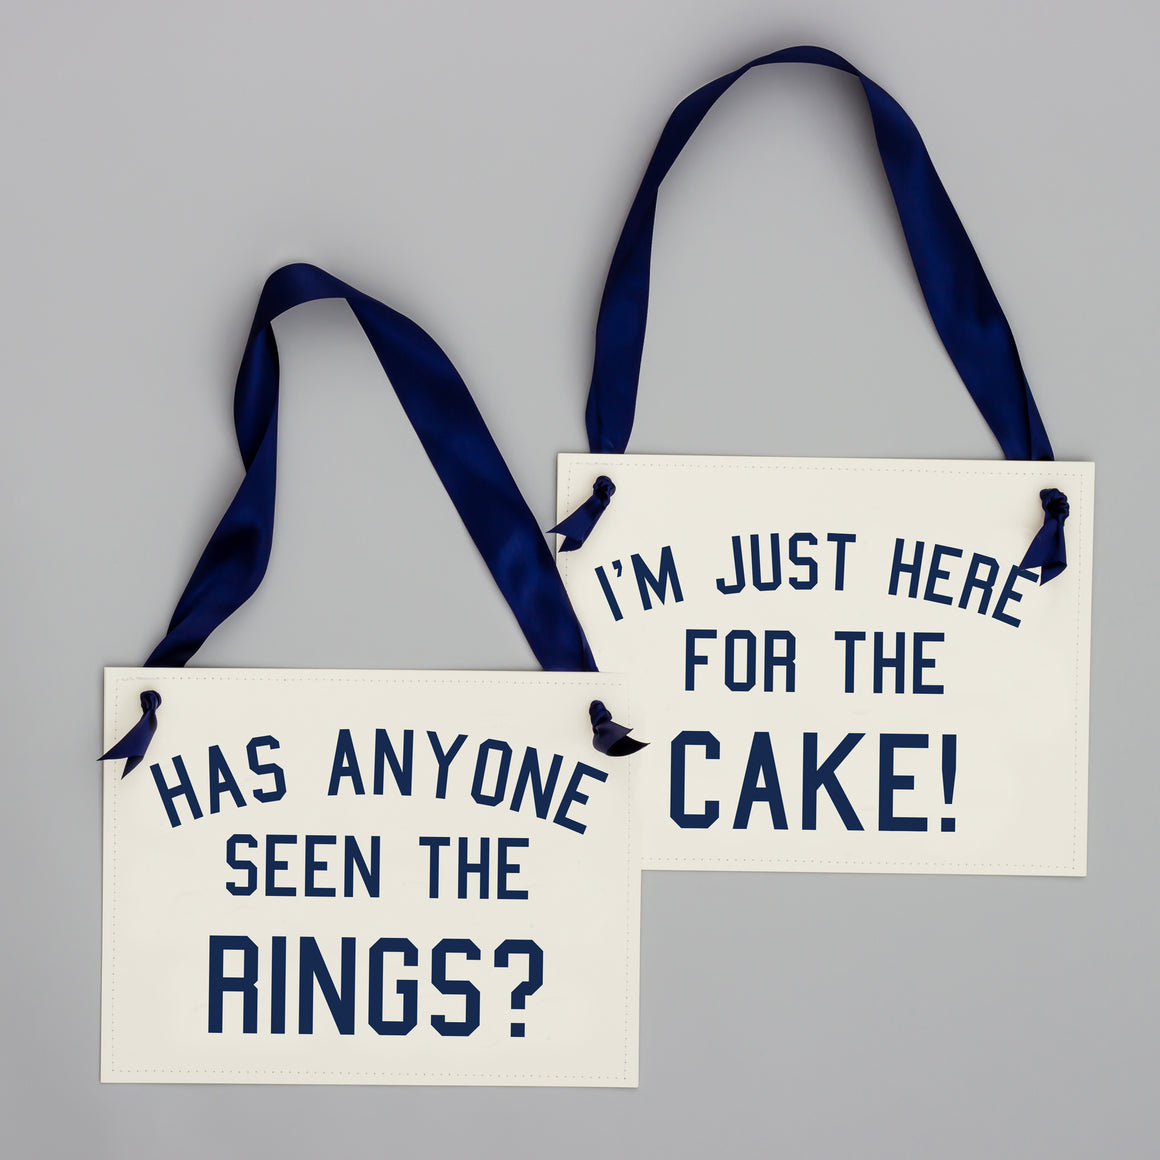 I'm Just Here For The Cake + Has Anyone Seen The Rings Set Navy Blue